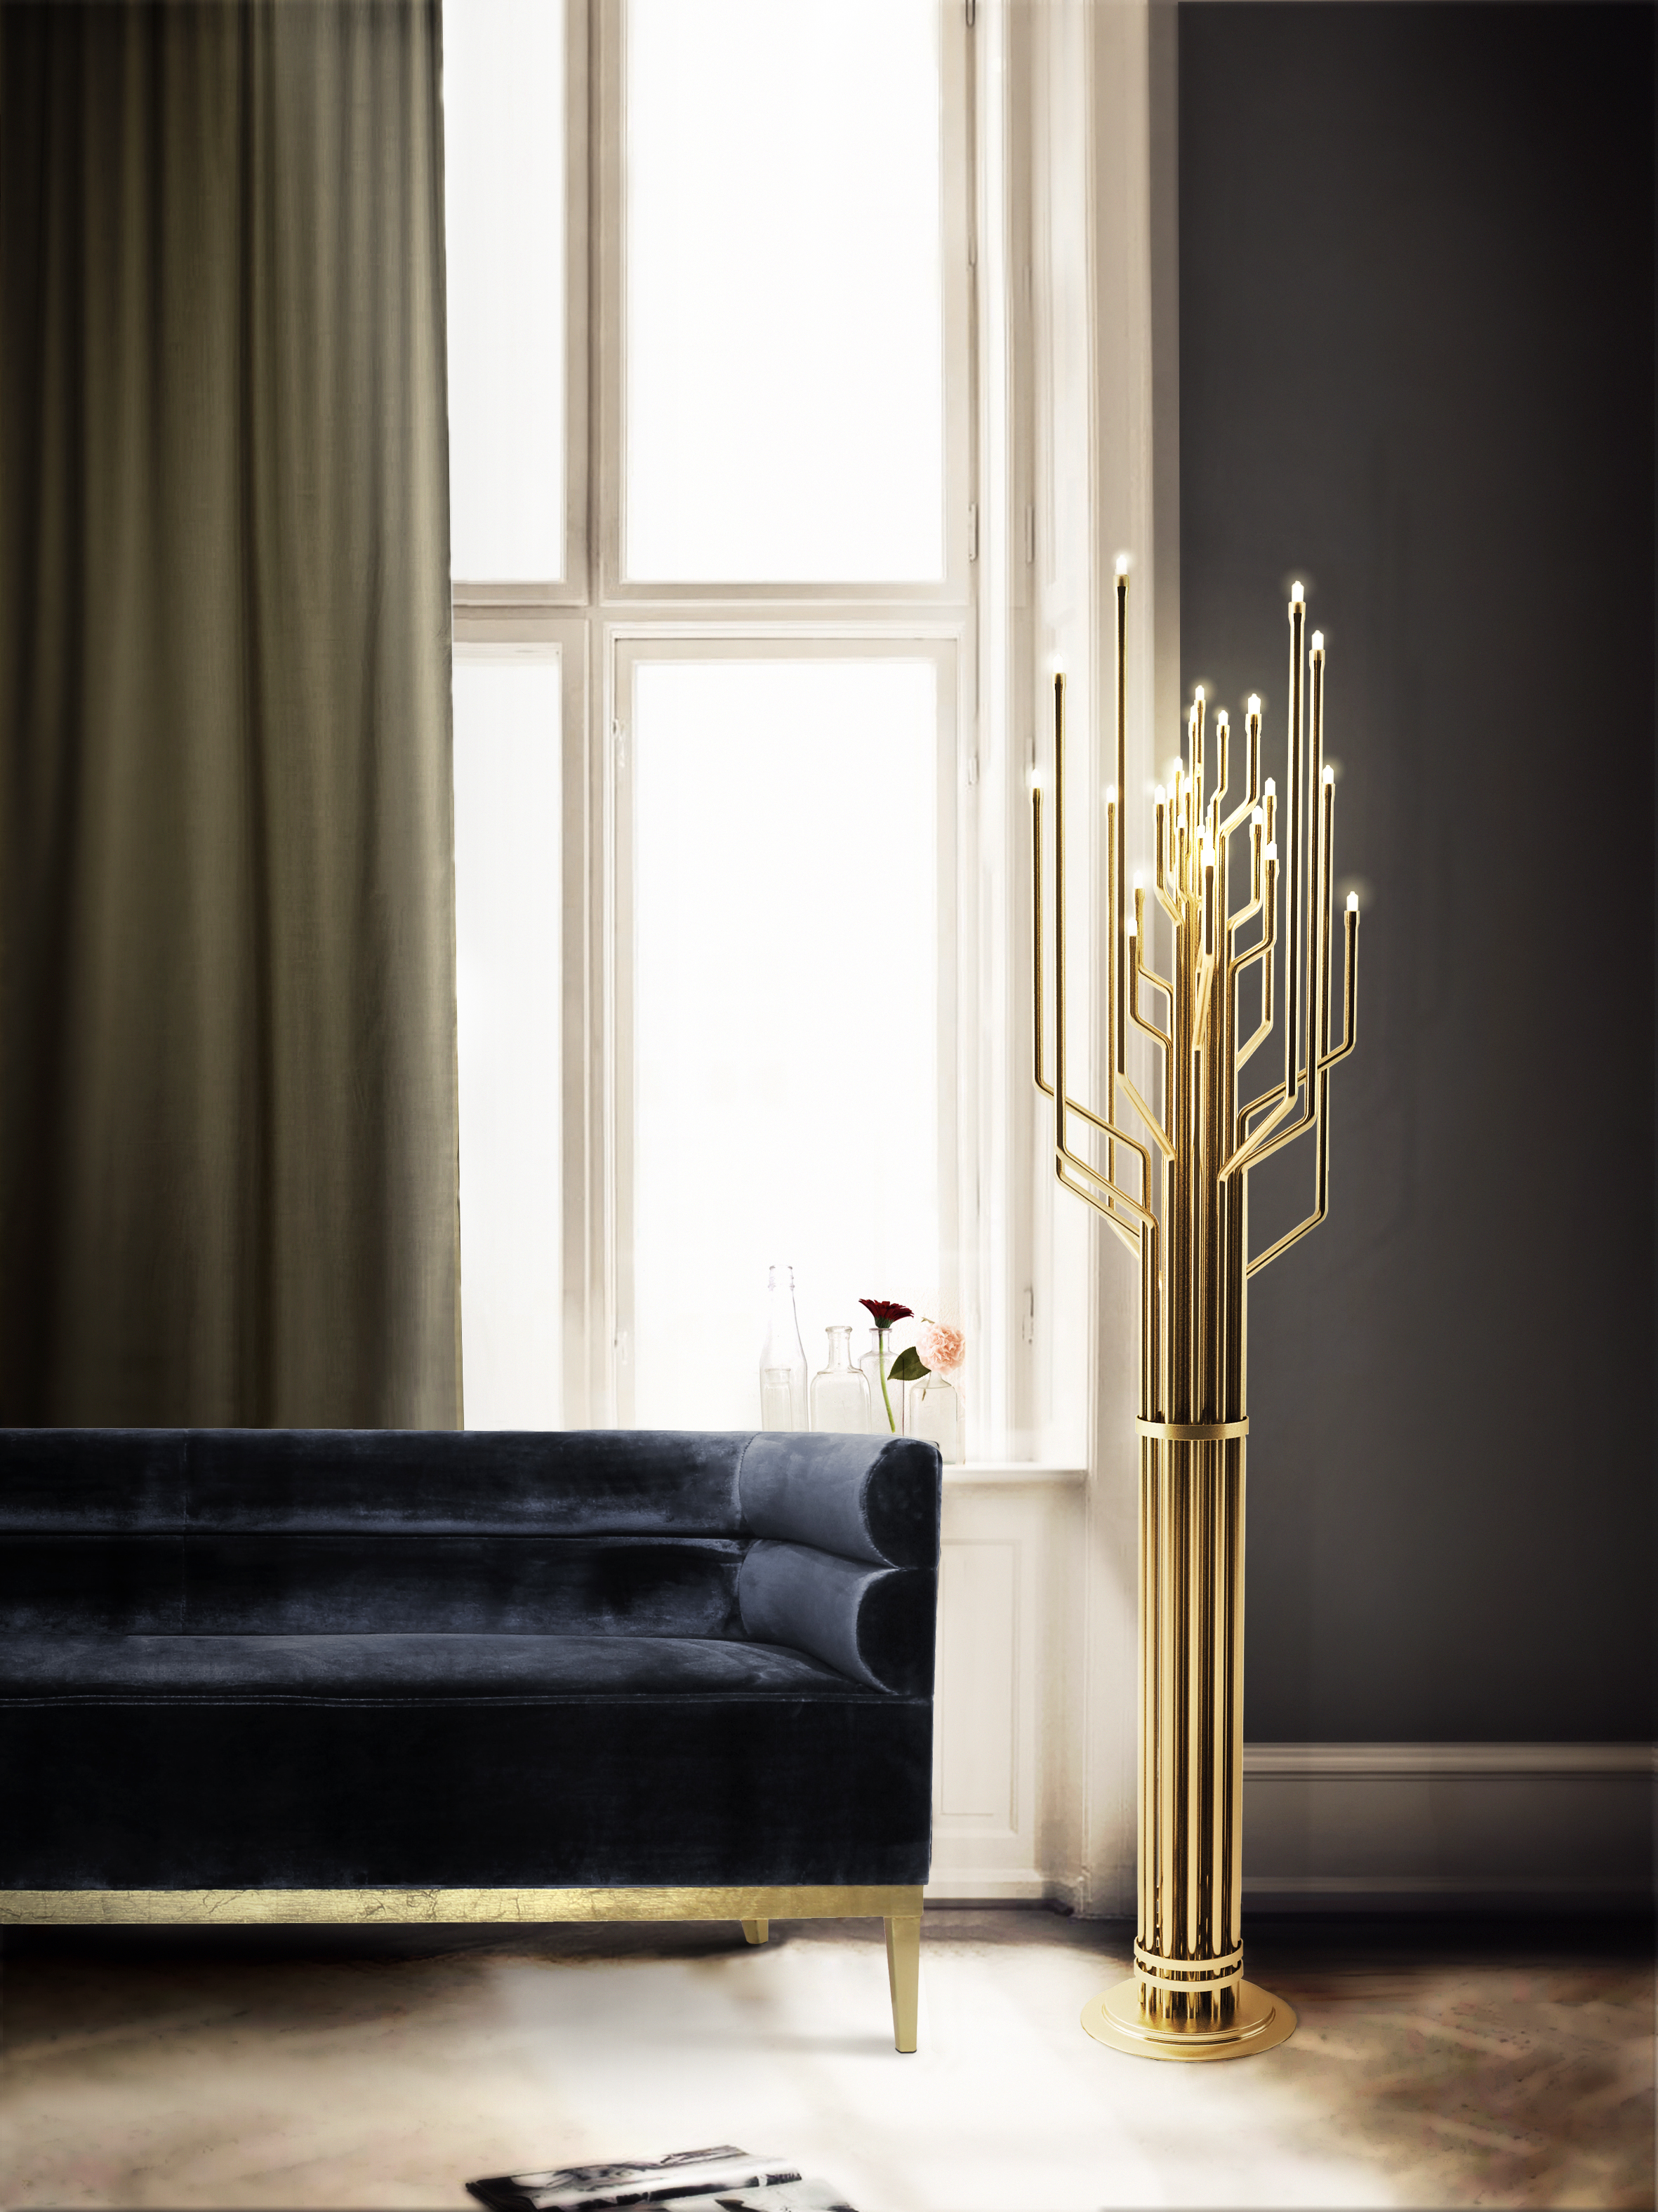 Bright Ideas A Brass Floor Lamp for Your Contemporary Design 1 brass floor lamp Bright Ideas: A Brass Floor Lamp for Your Contemporary Design Bright Ideas A Brass Floor Lamp for Your Contemporary Design 2